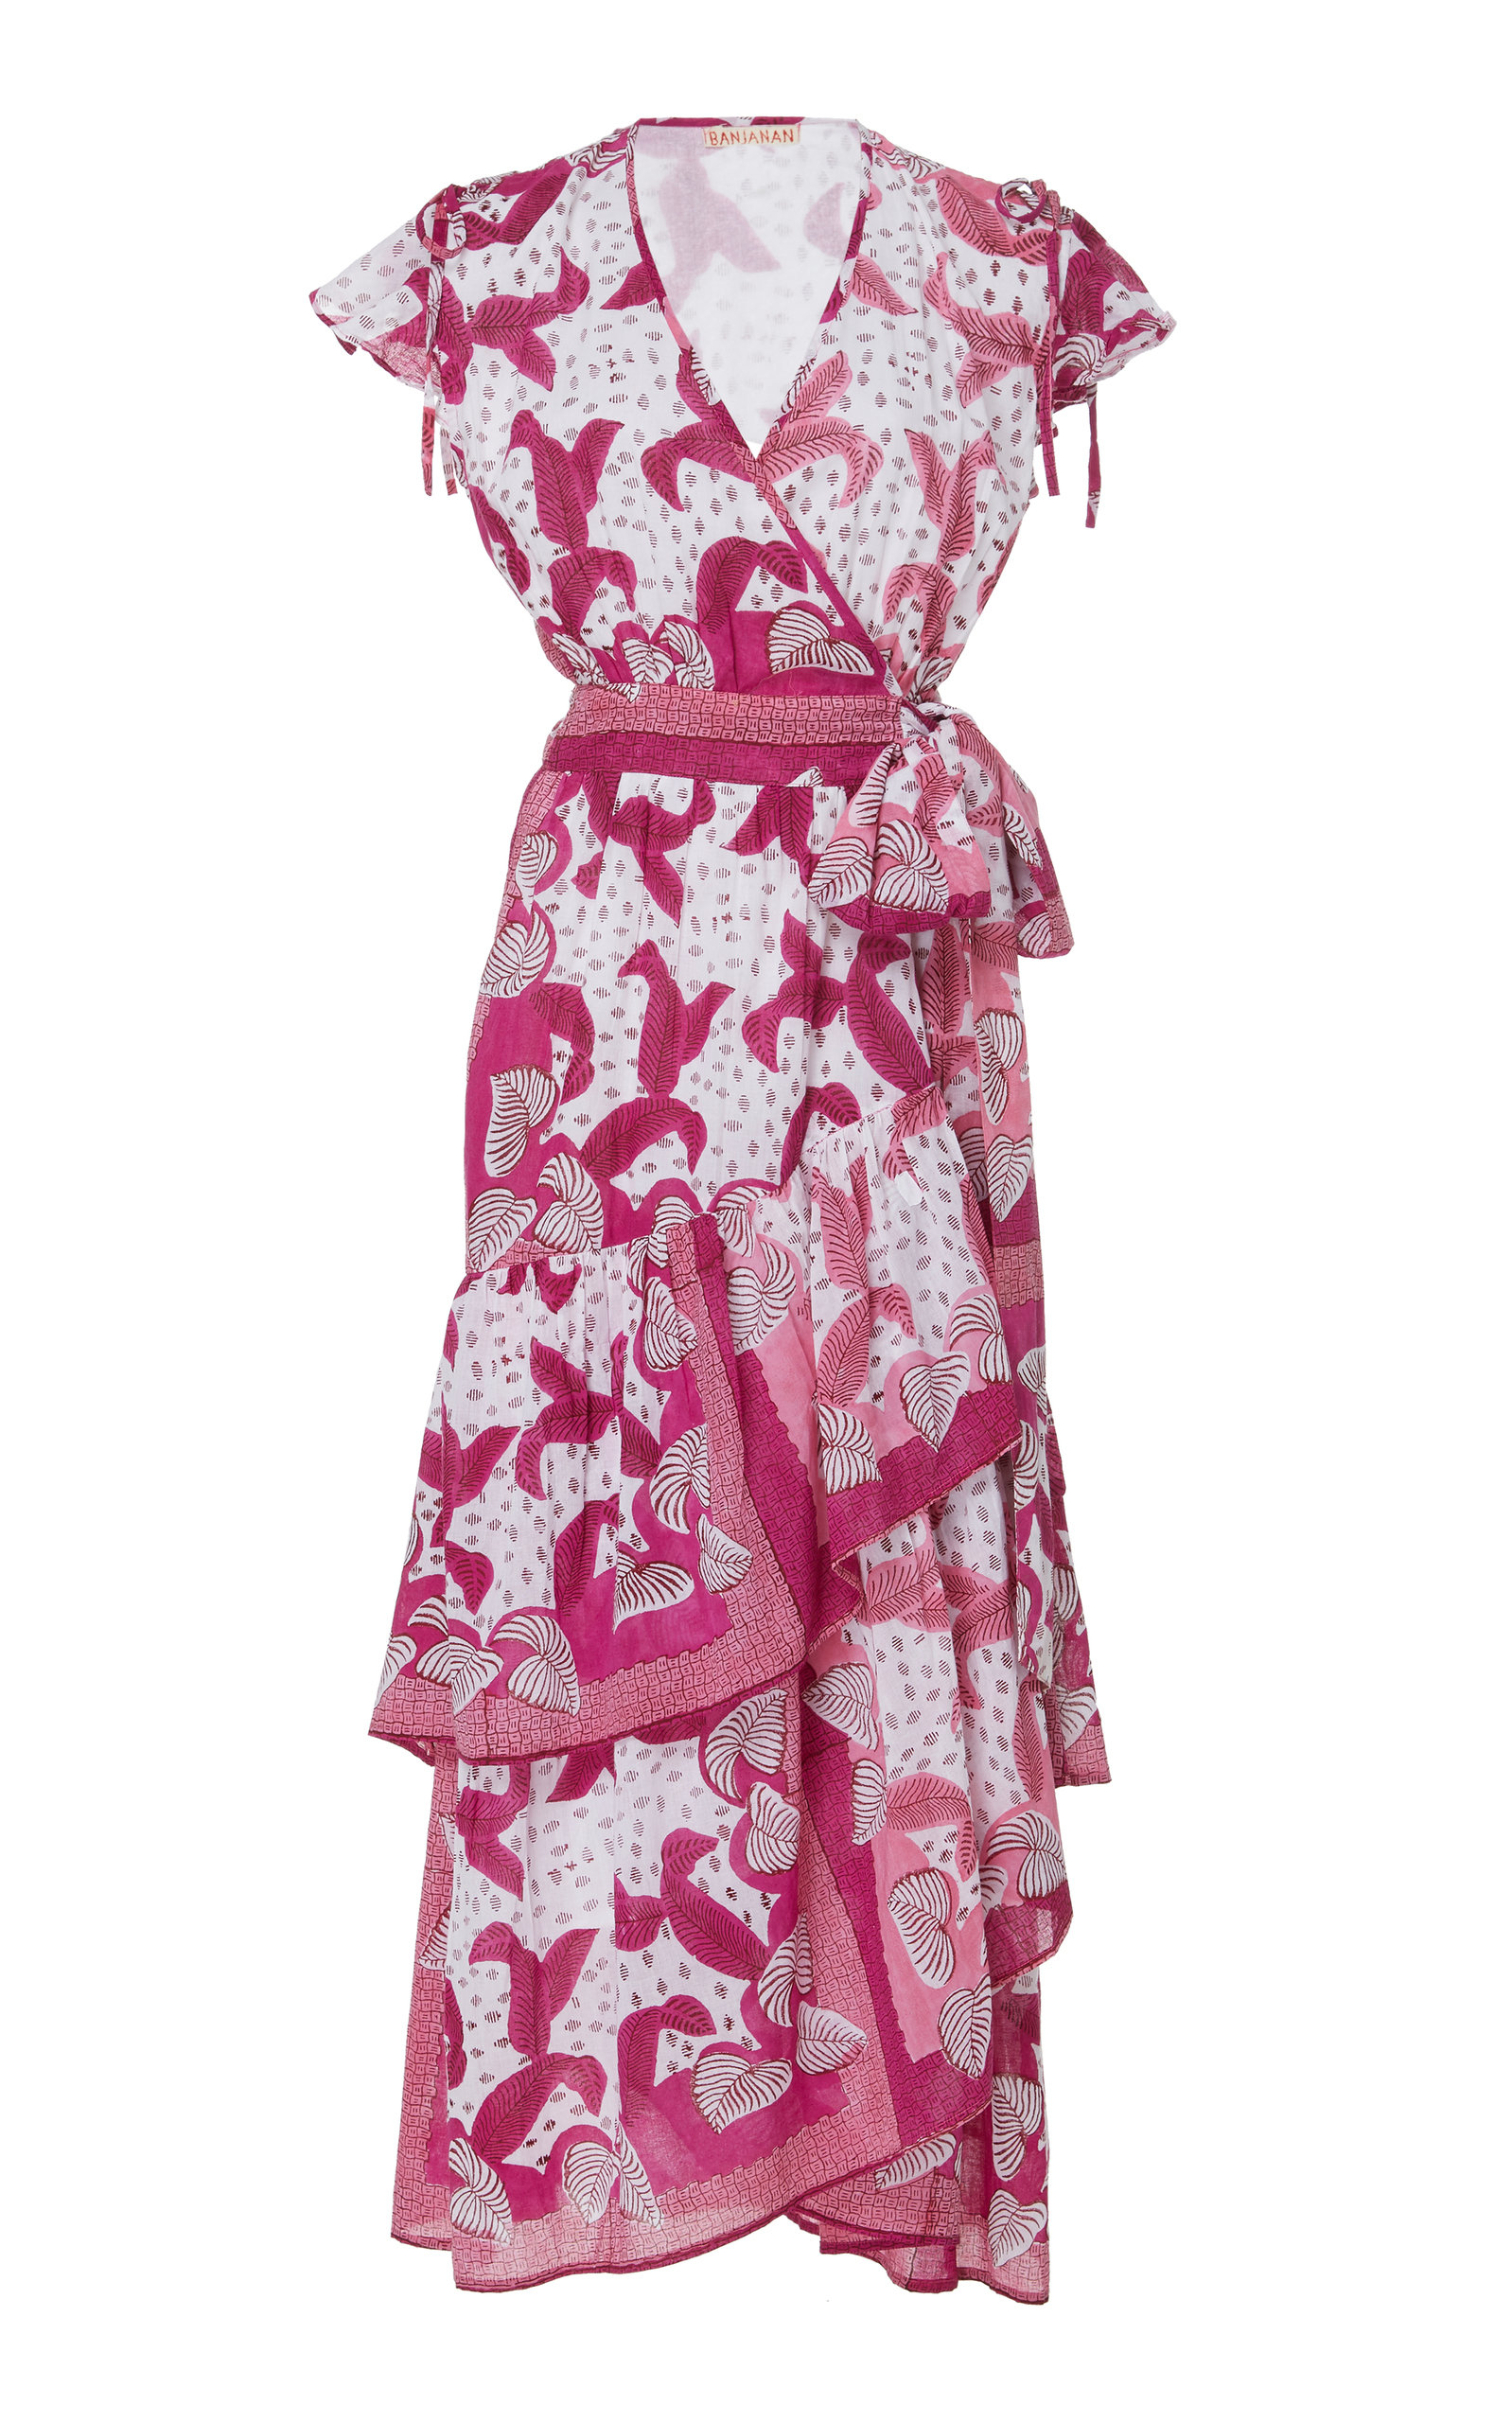 BANJANAN Mercy Cotton Voile Dress in Pink